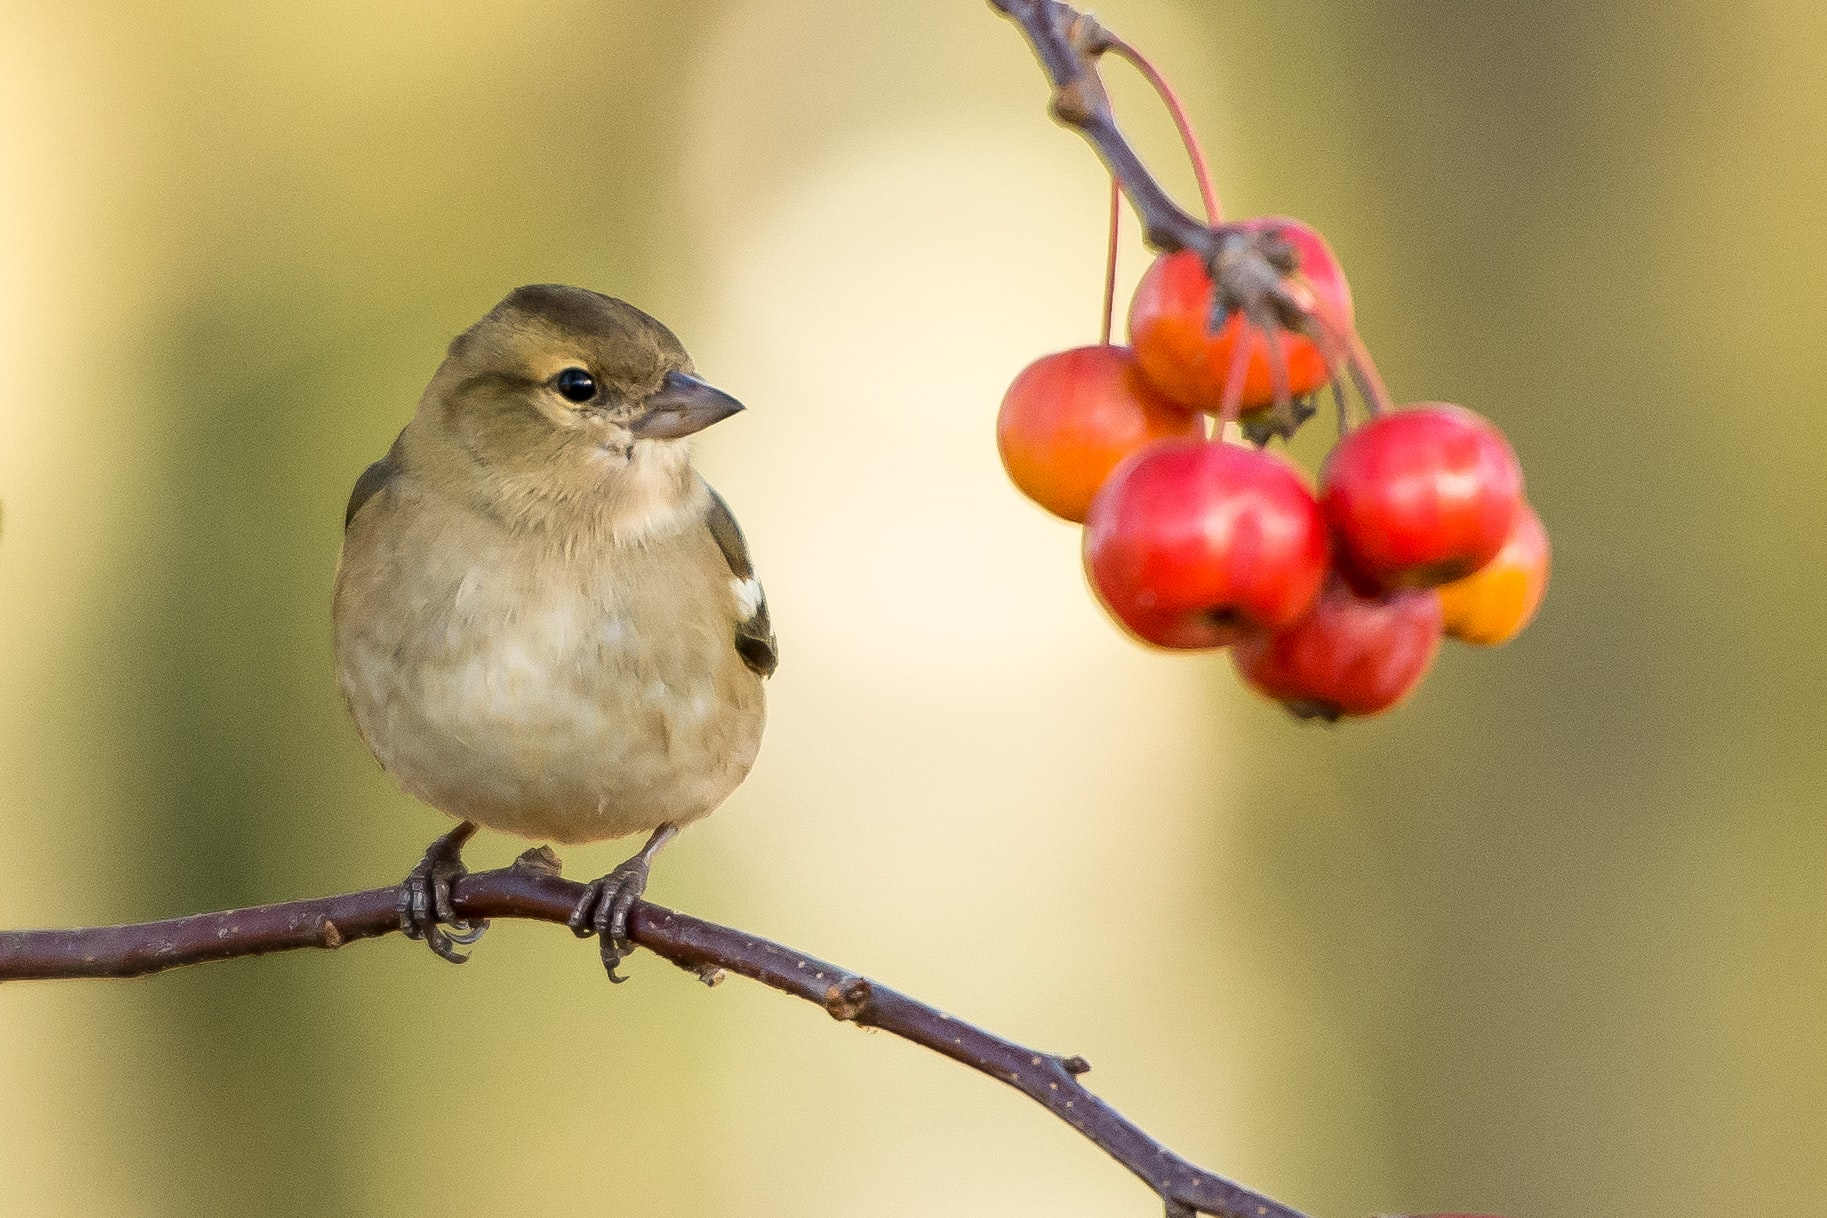 A small bird perched on a tree branch and looking at a bunch of red berries